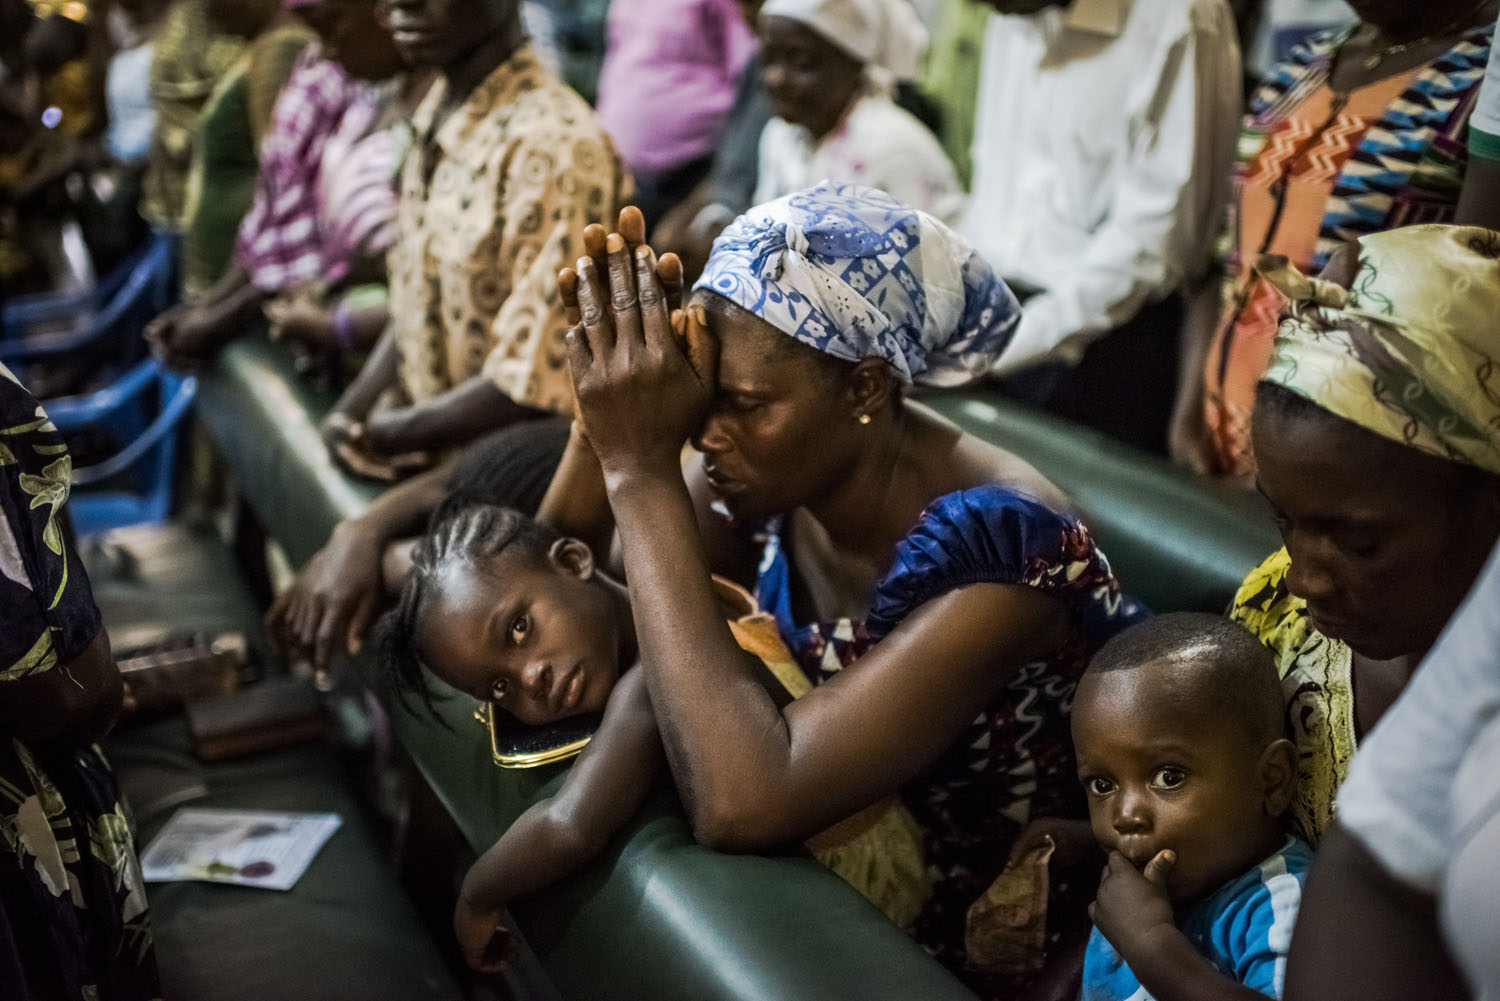 Residents of the West Point neighborhood attend church after a 10-day quarantine was lifted in Monrovia, Liberia, Aug. 31, 2014.